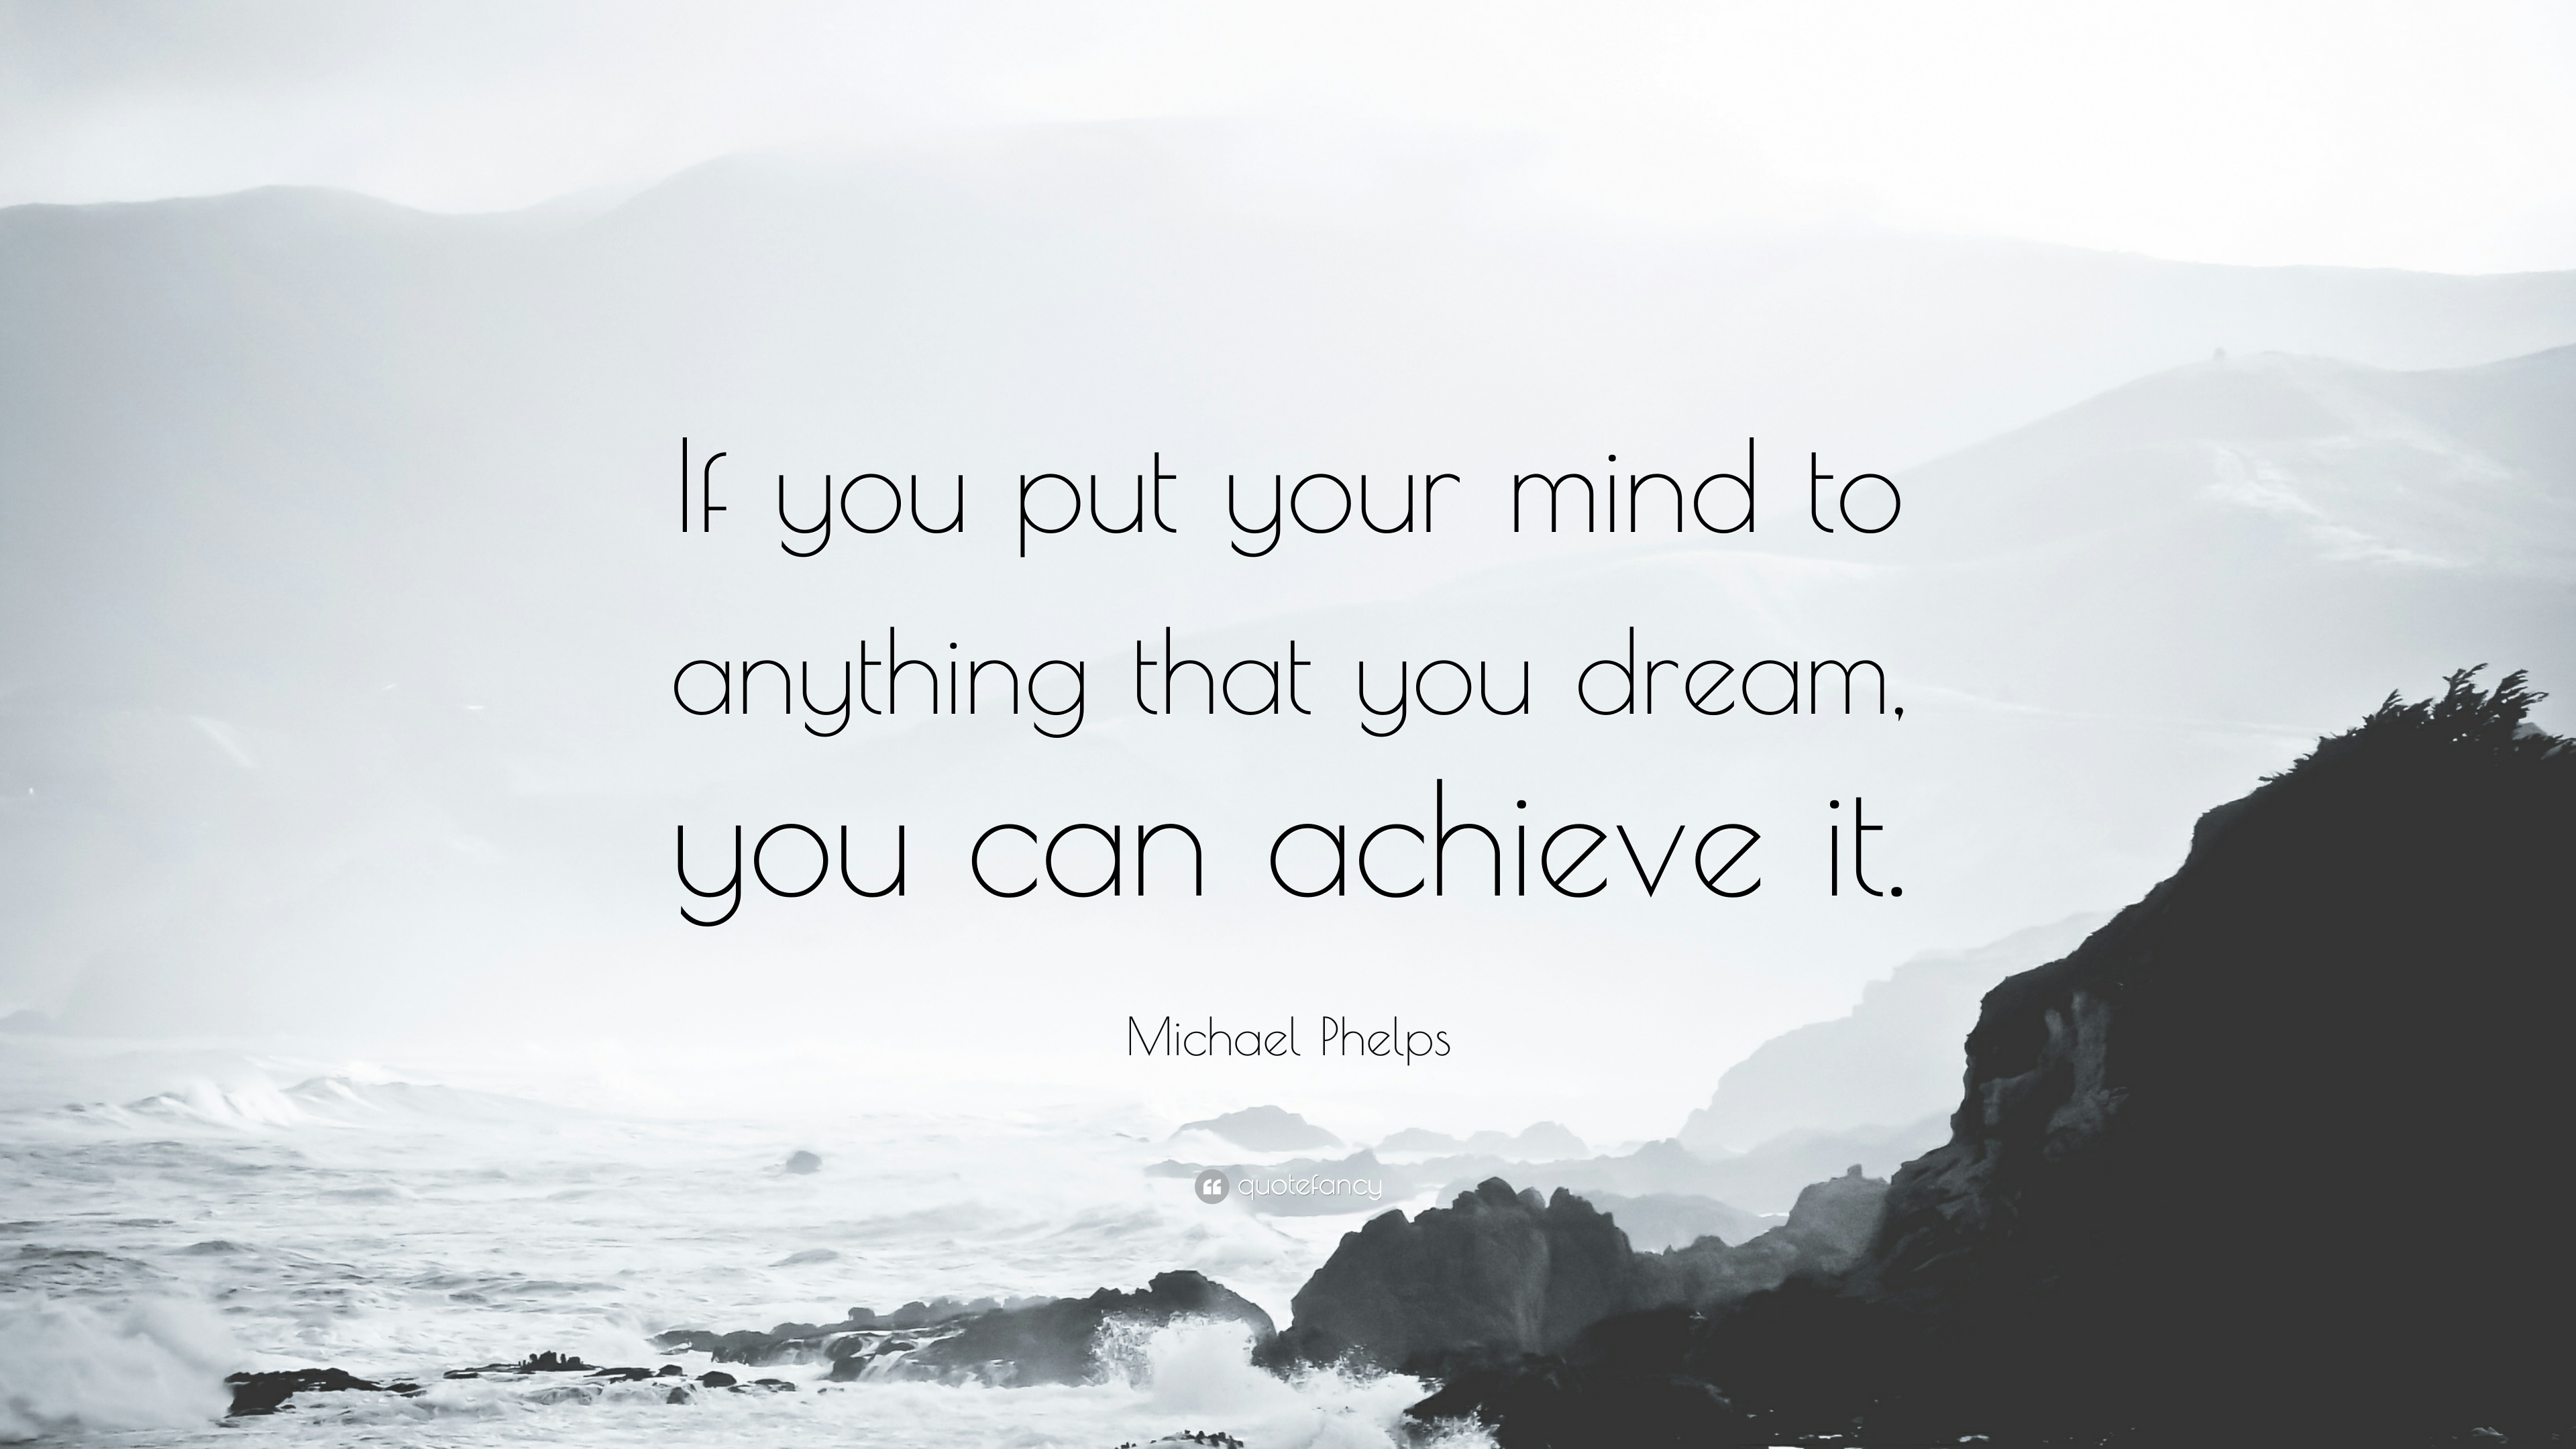 Michael Phelps Quote If You Put Your Mind To Anything That You